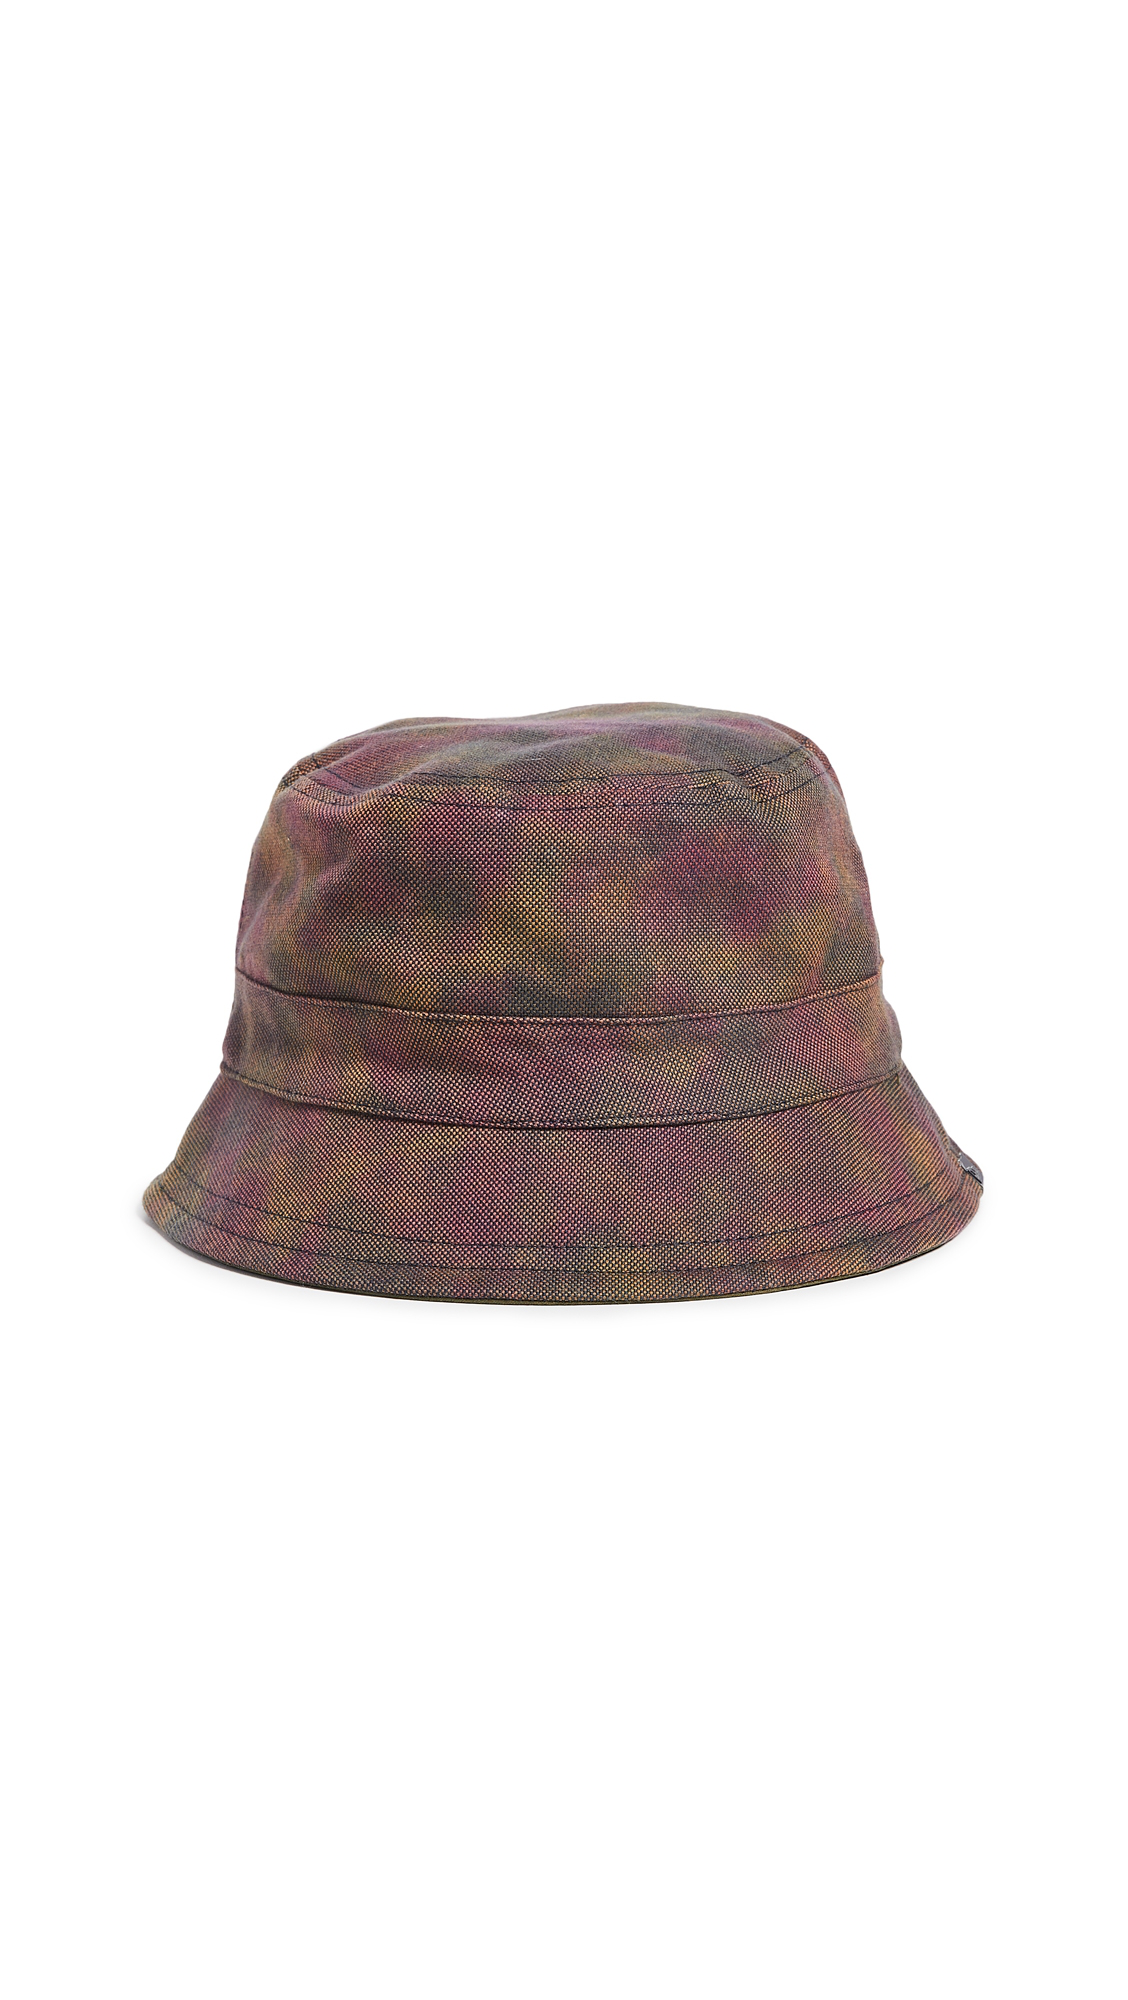 21cc8d61a1c72 New Era Dyed Oxford Reversible Bucket Hat In Pink